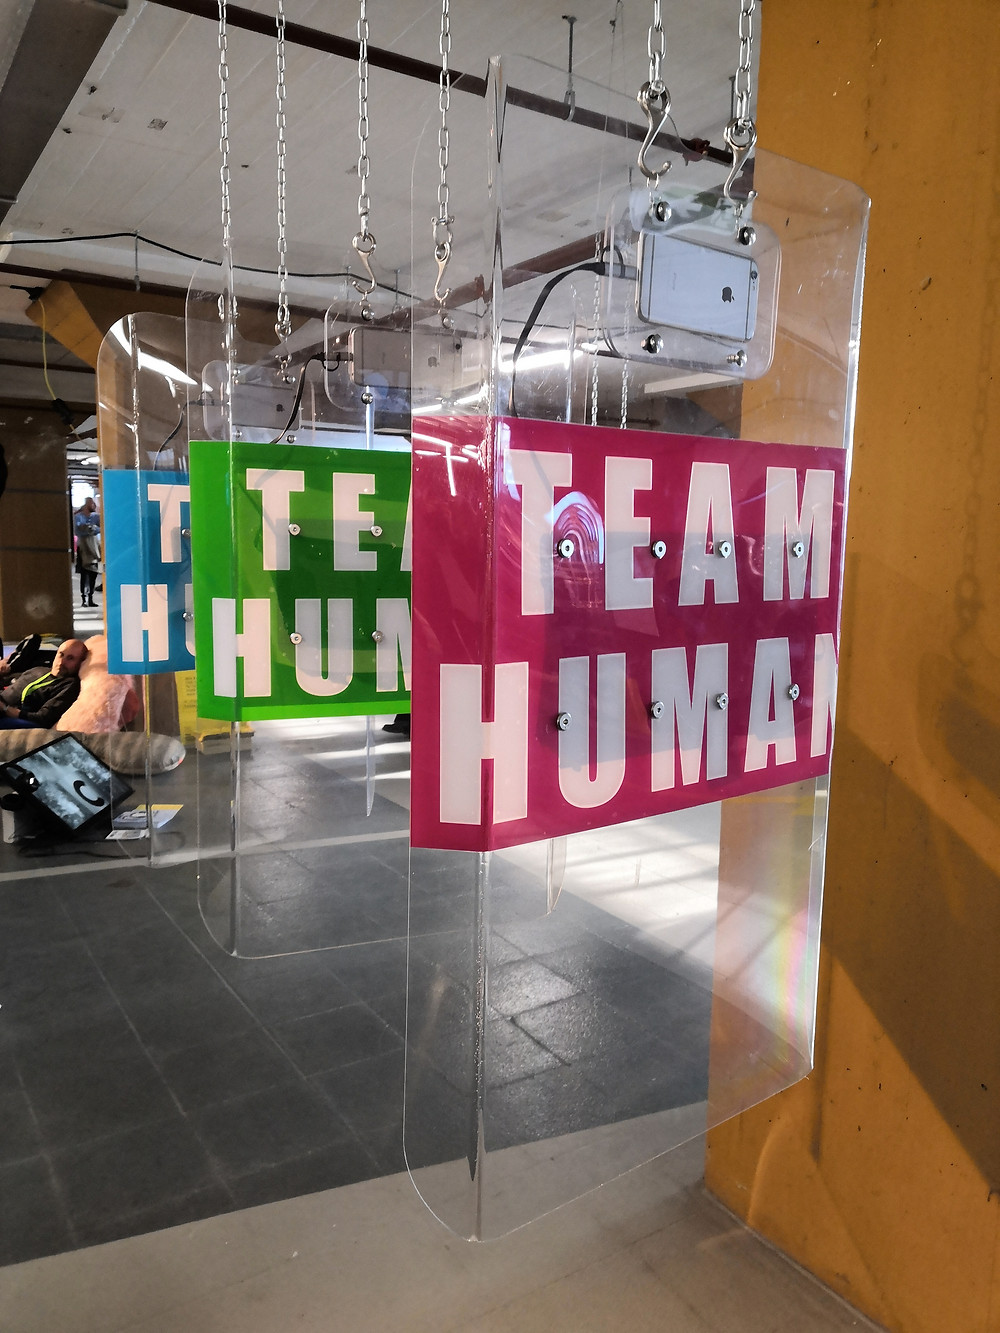 """Three clear, acrylic shields hung from the ceiling on chains, each has the text """"Team human"""" in white on a pink, green or blue background."""